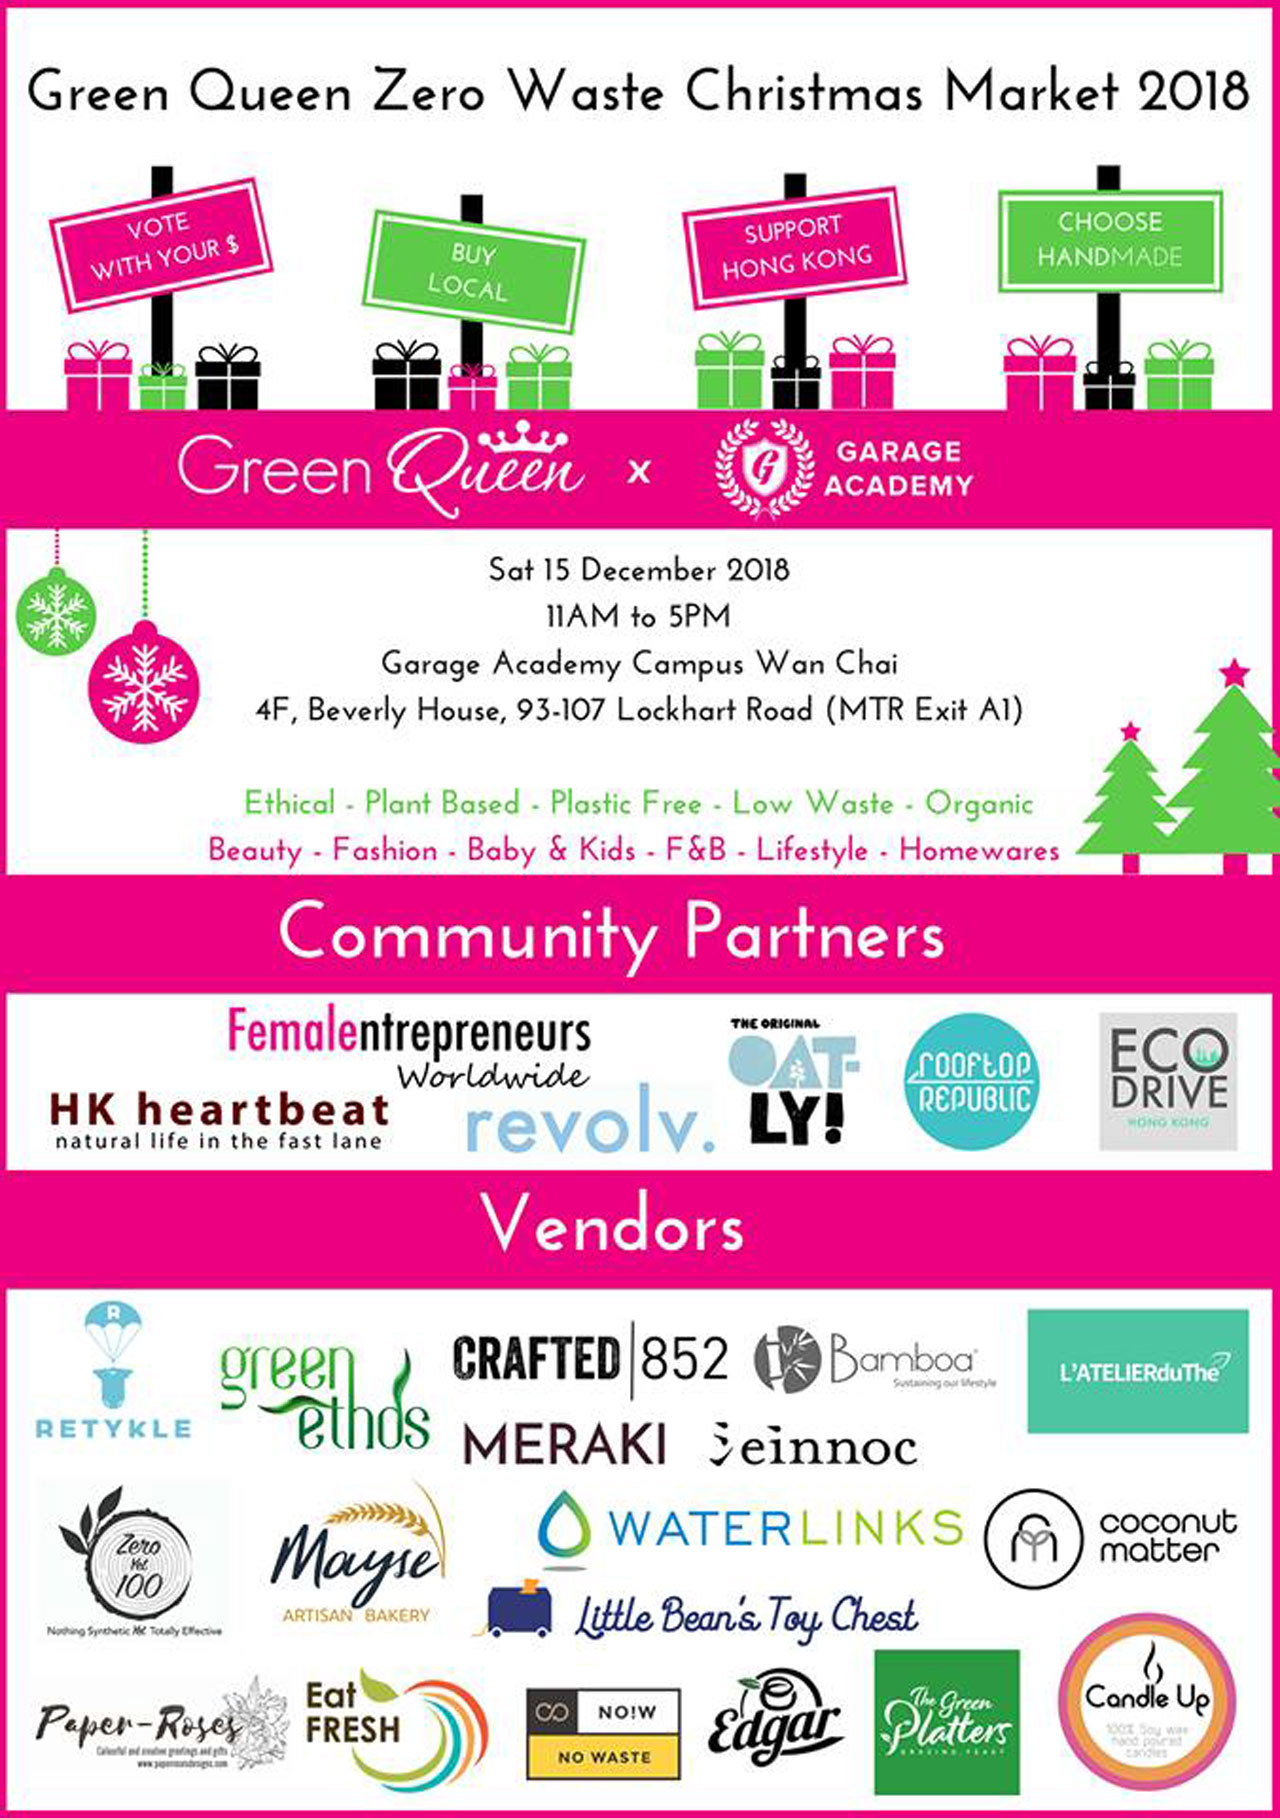 Green Queen Zero Waste Christmas Market